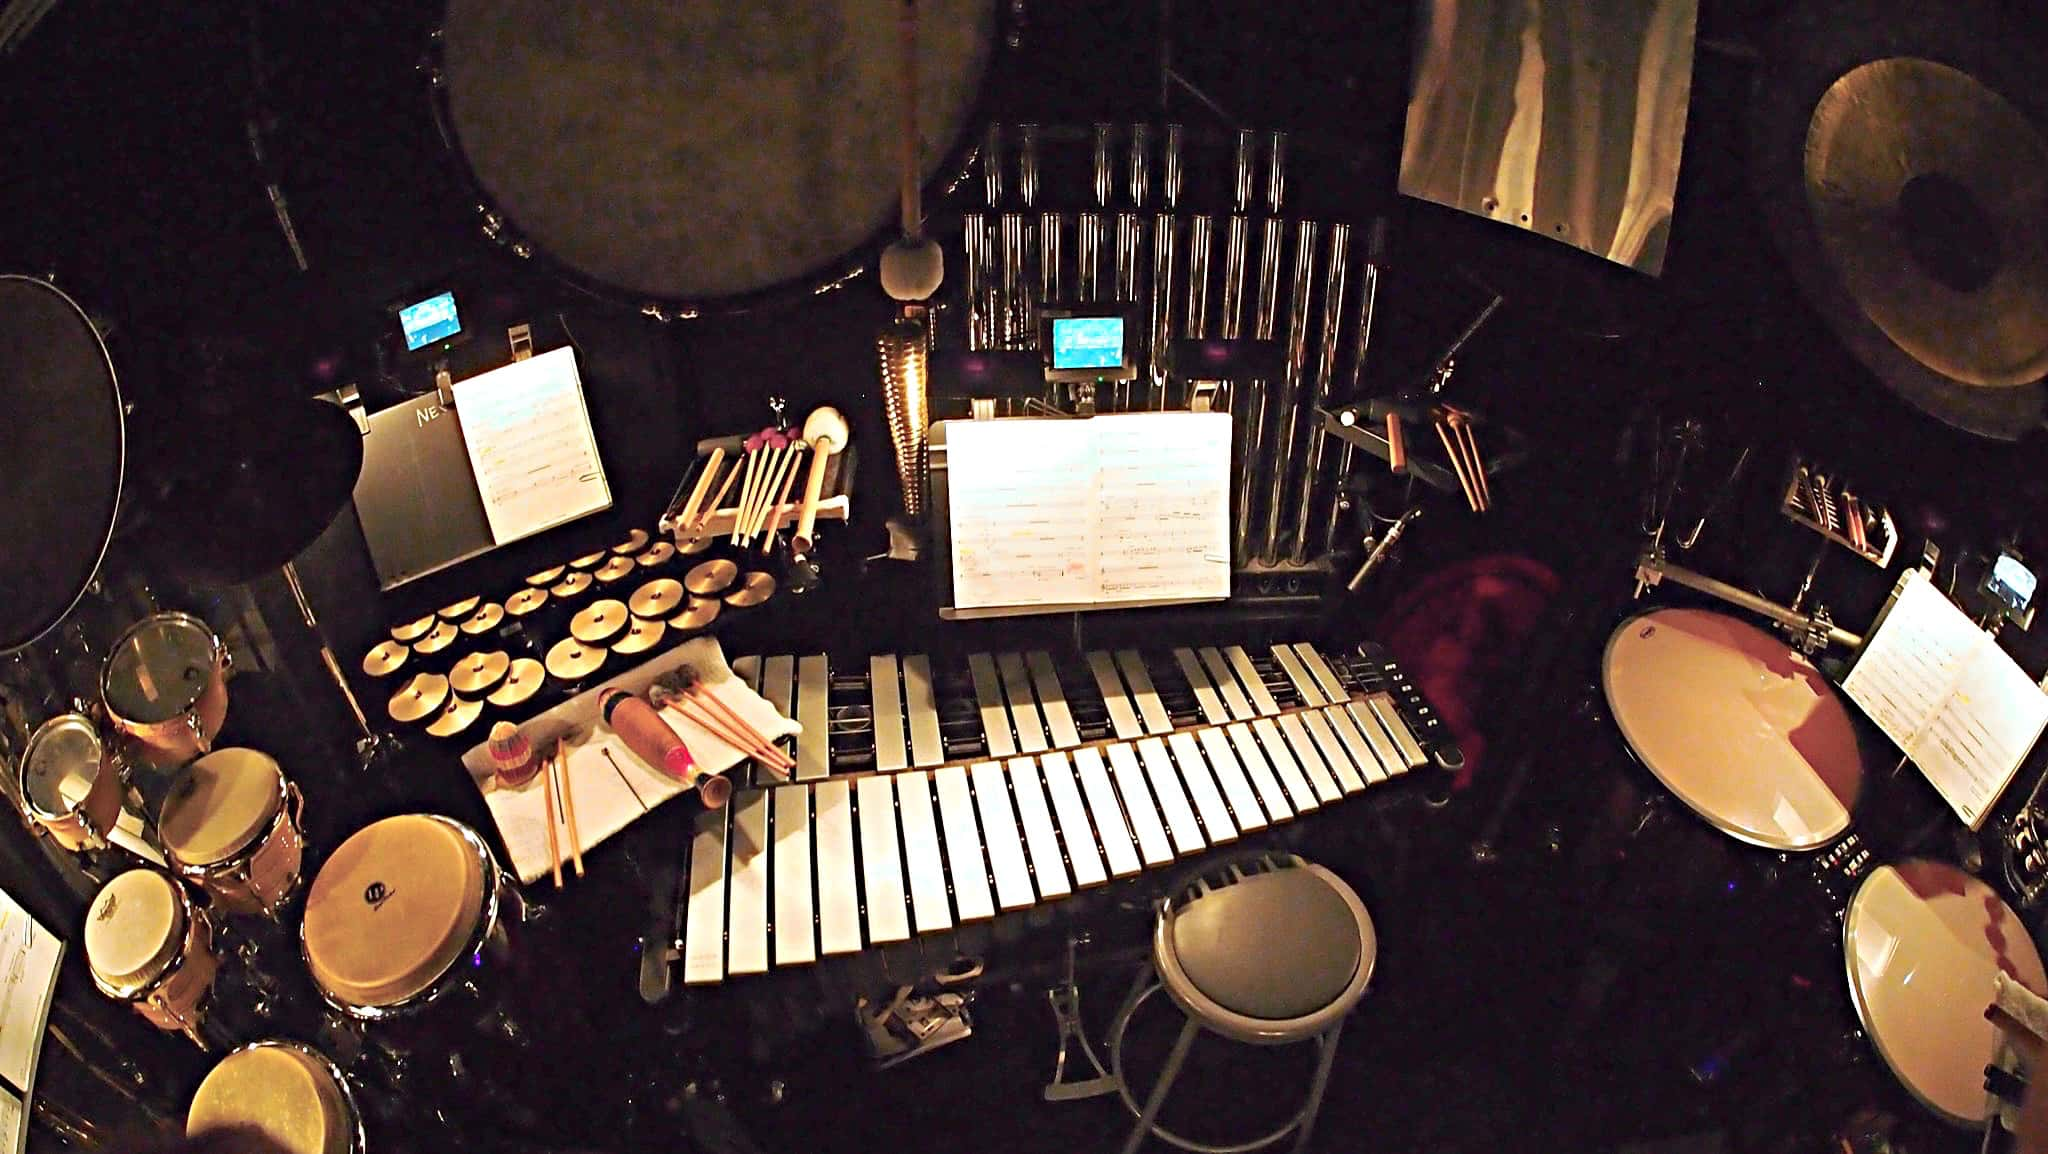 Mike Englander's percussion setup for the Broadway production of Aladdin at the New Amsterdam Theatre.